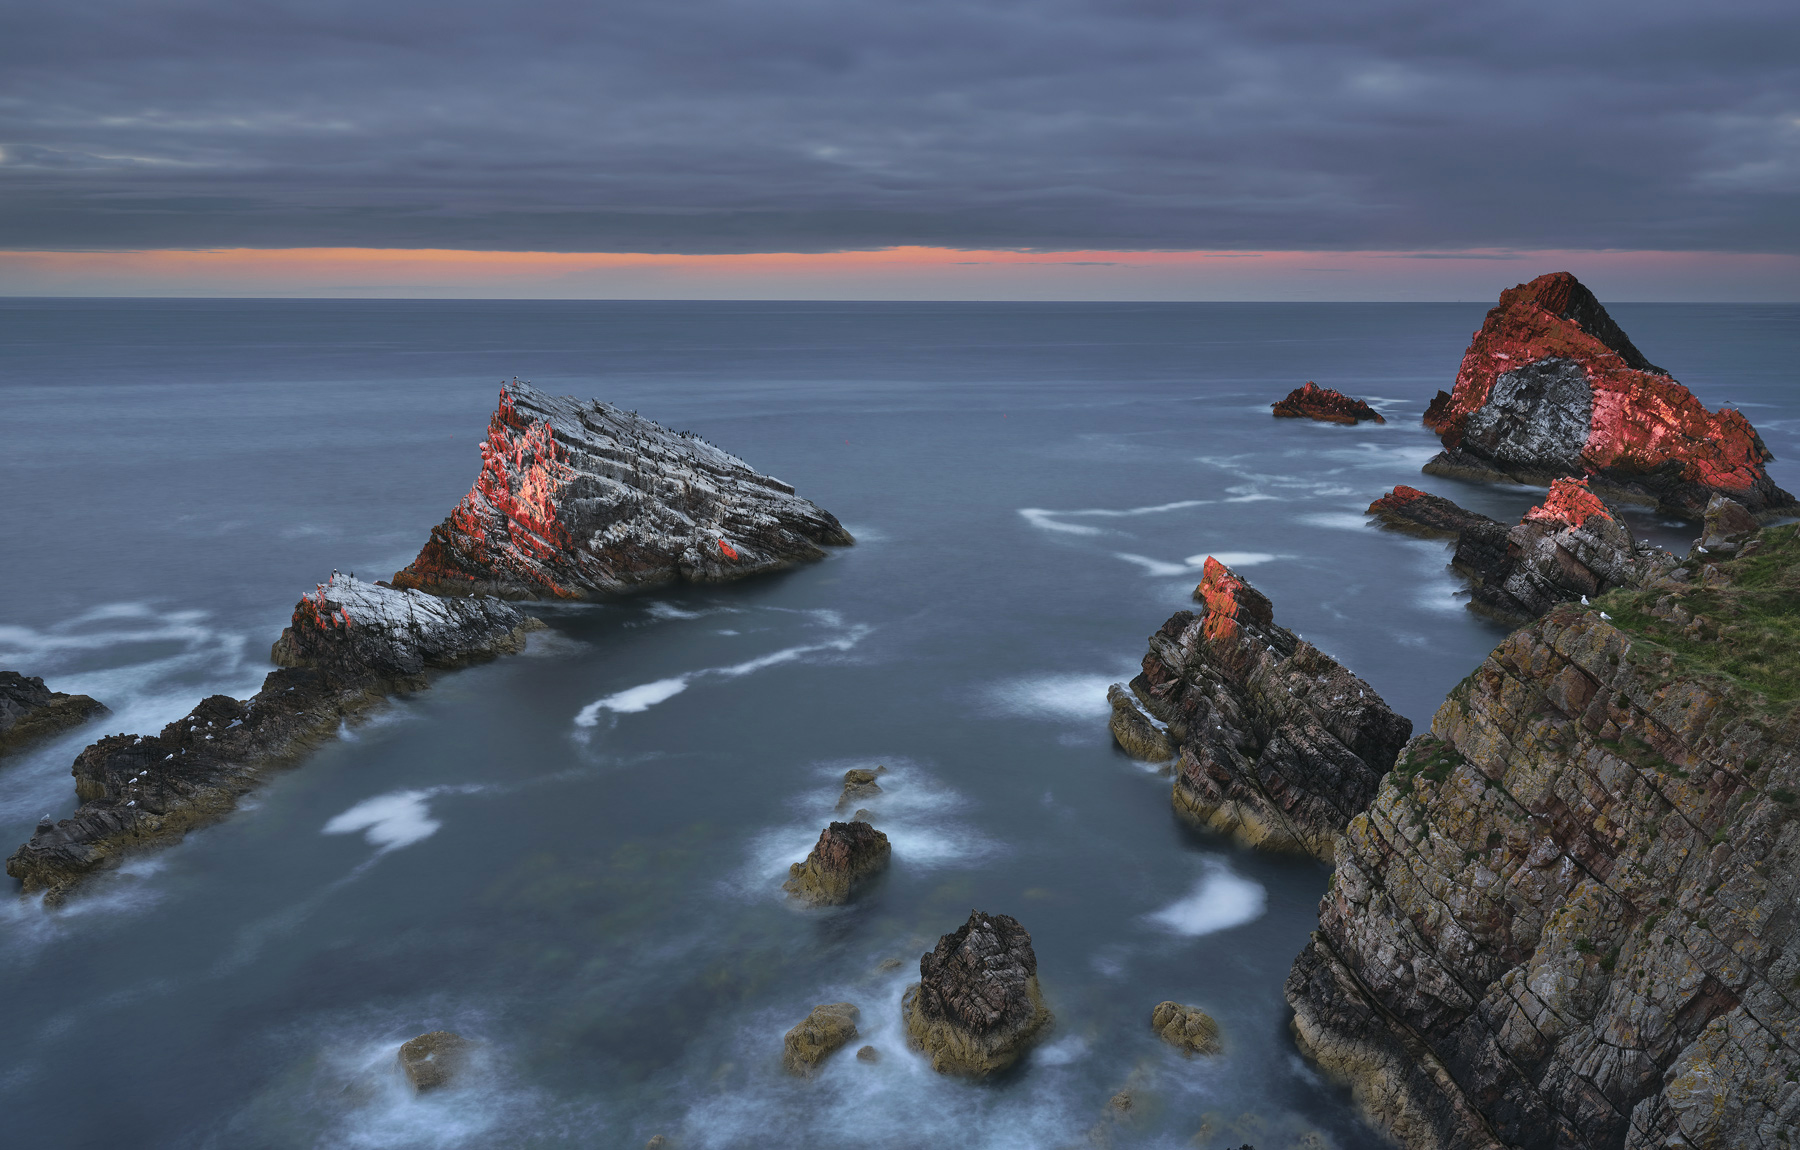 Dying Embers Portknockie, Portknockie, Moray, Scotland, flickering, embers, feathered, crags, Bird shit, Bowfiddle rock, photo